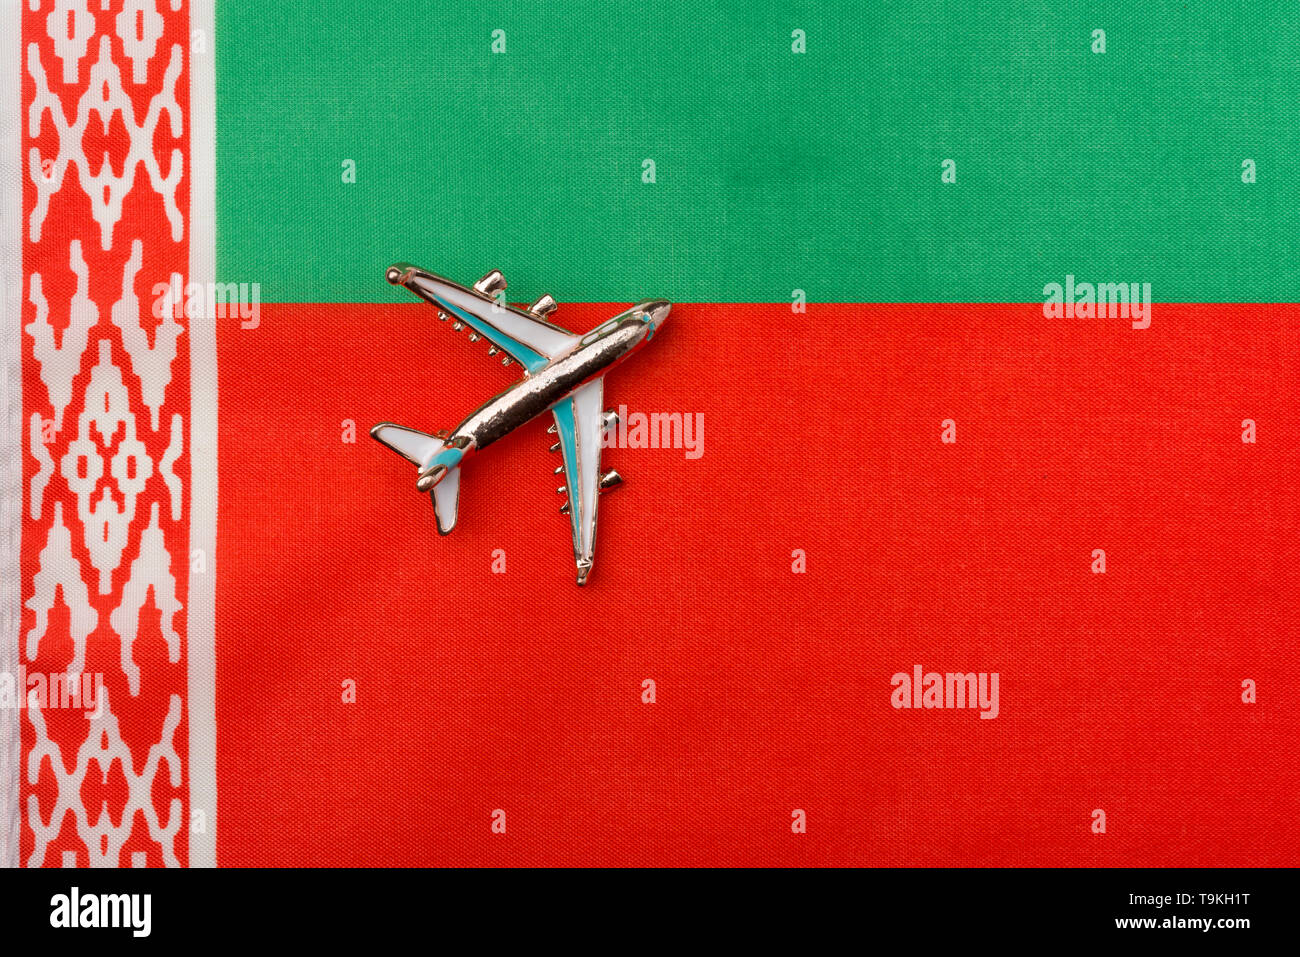 Plane over the flag of Belarus travel concept. Toy plane on the flag in the background. - Stock Image